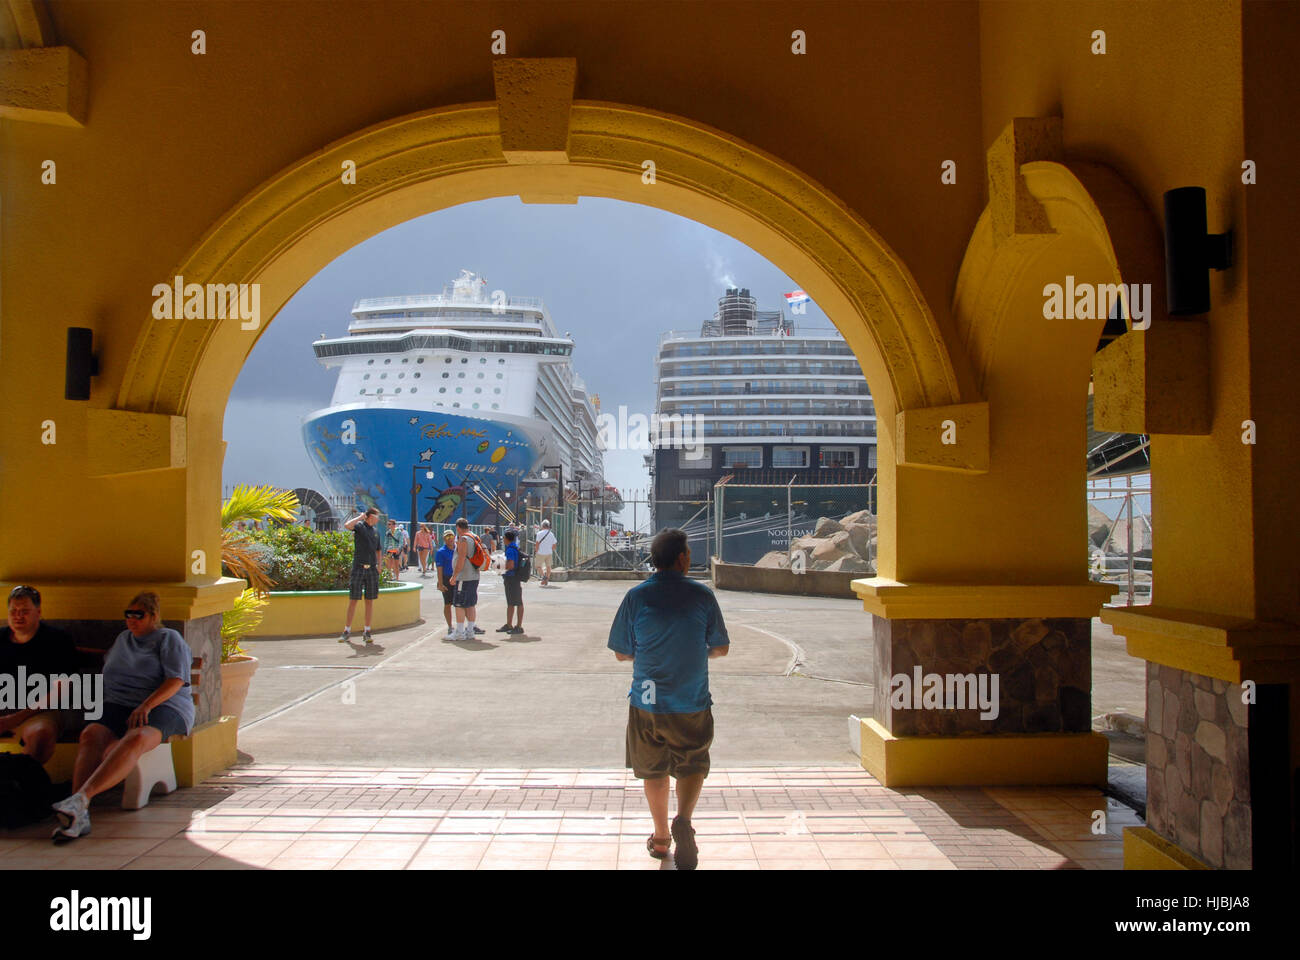 Passage to cruise liners, St Kitts, Caribbean - Stock Image